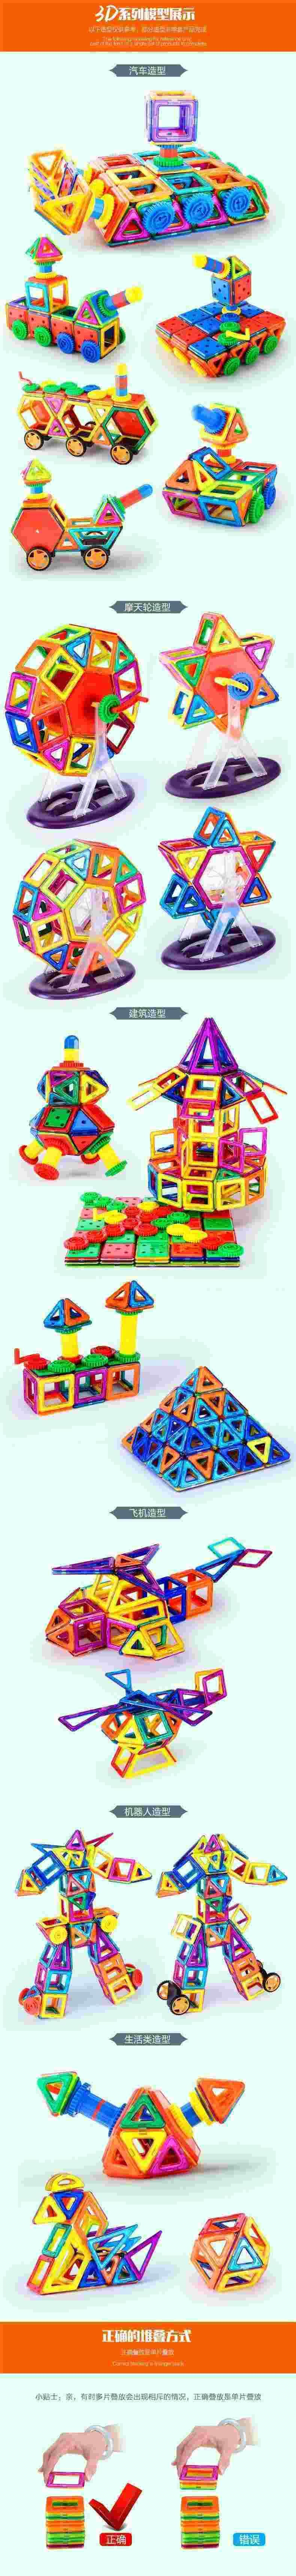 The handsome dog magnetic piece building block 3 4 5 6 7 8 9 10